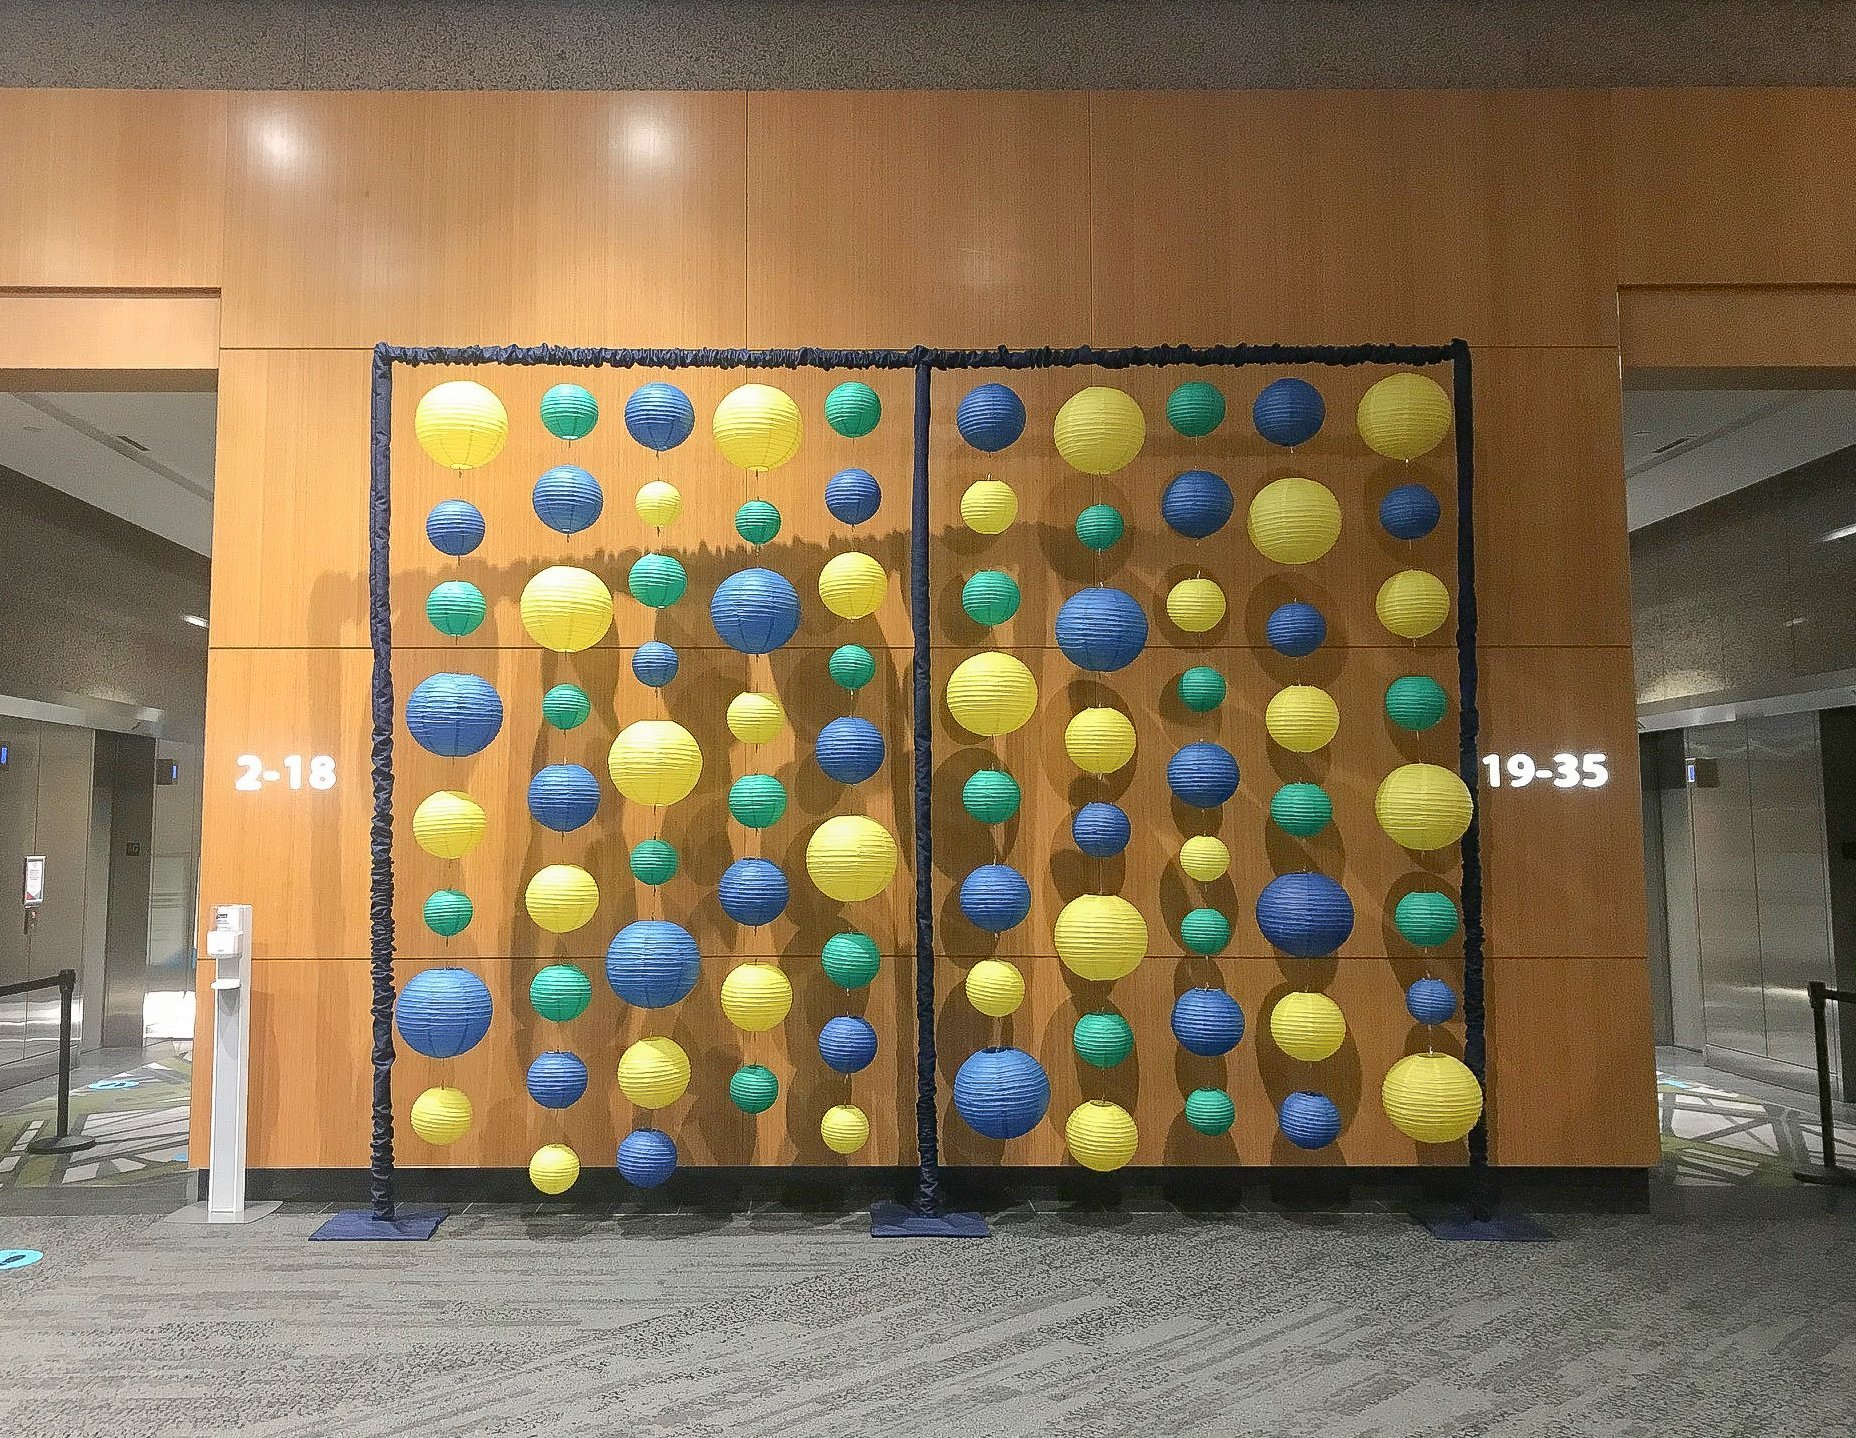 non-traditional lantern display backdrop. yellow green and blue lanterns in commercial office building lobby